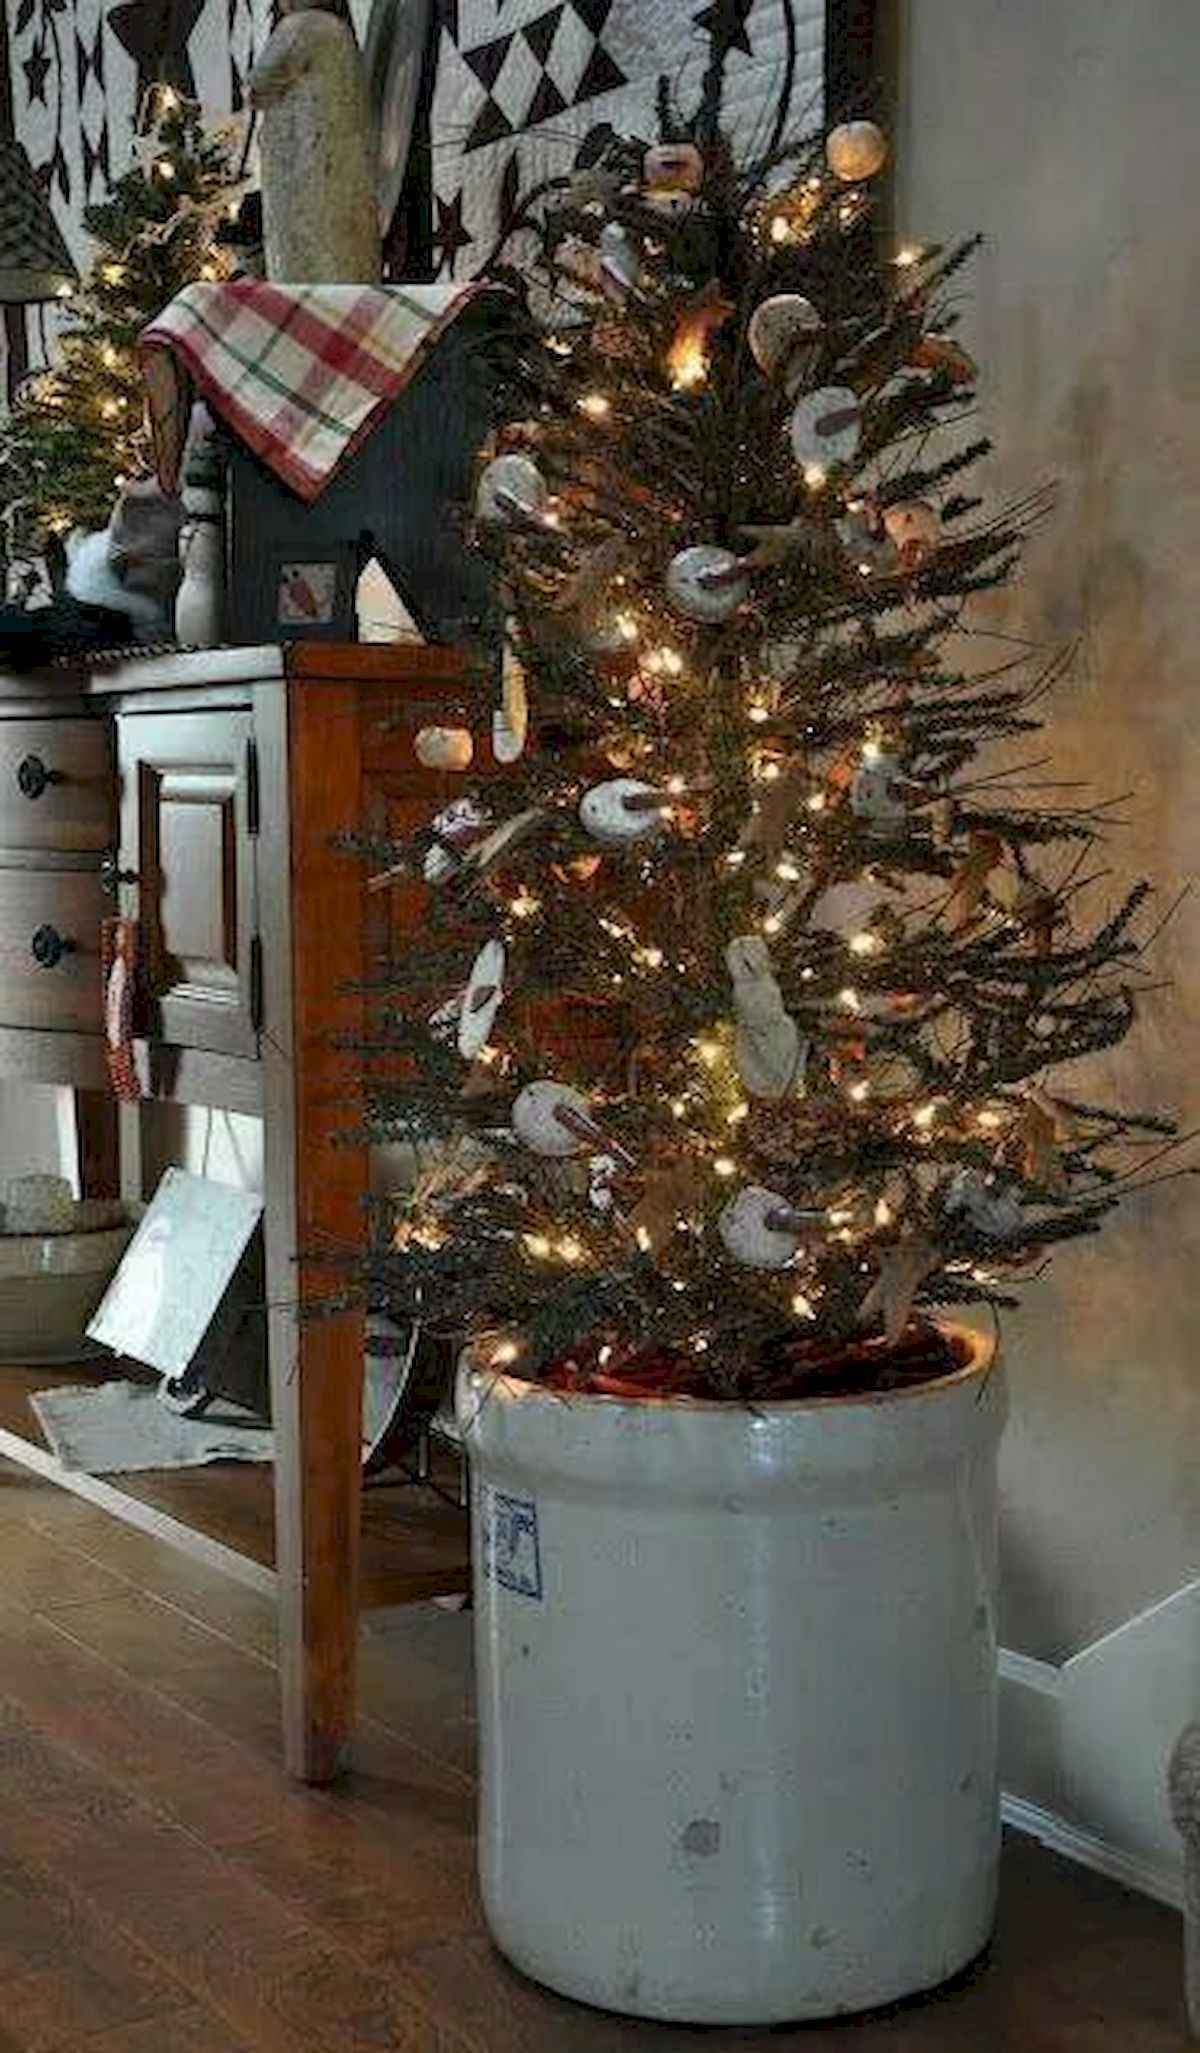 30 rustic and vintage christmas tree ideas decorations (6)